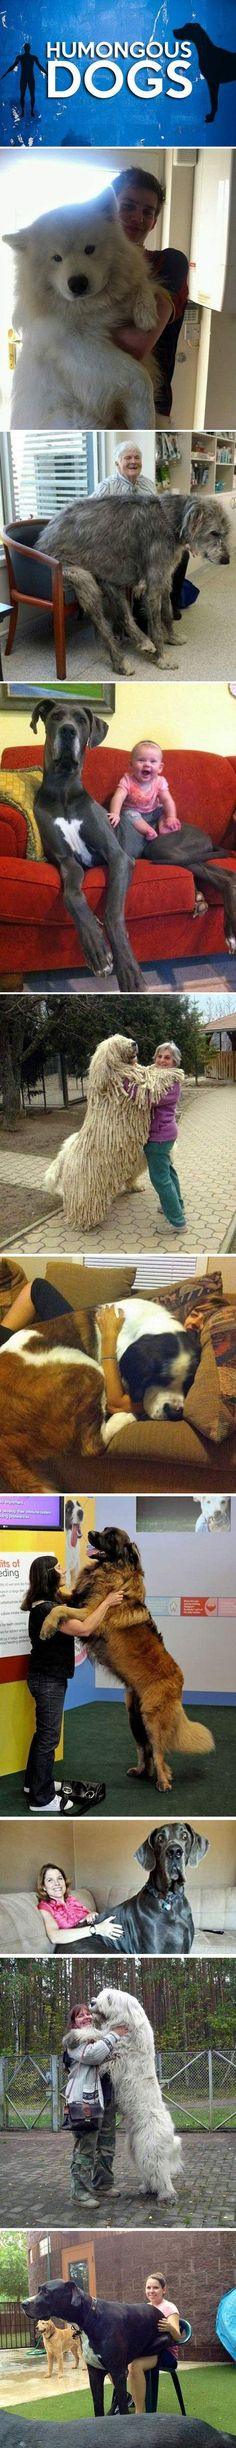 We love big dogs that think they're lap dogs! <3 if you feel the same way.